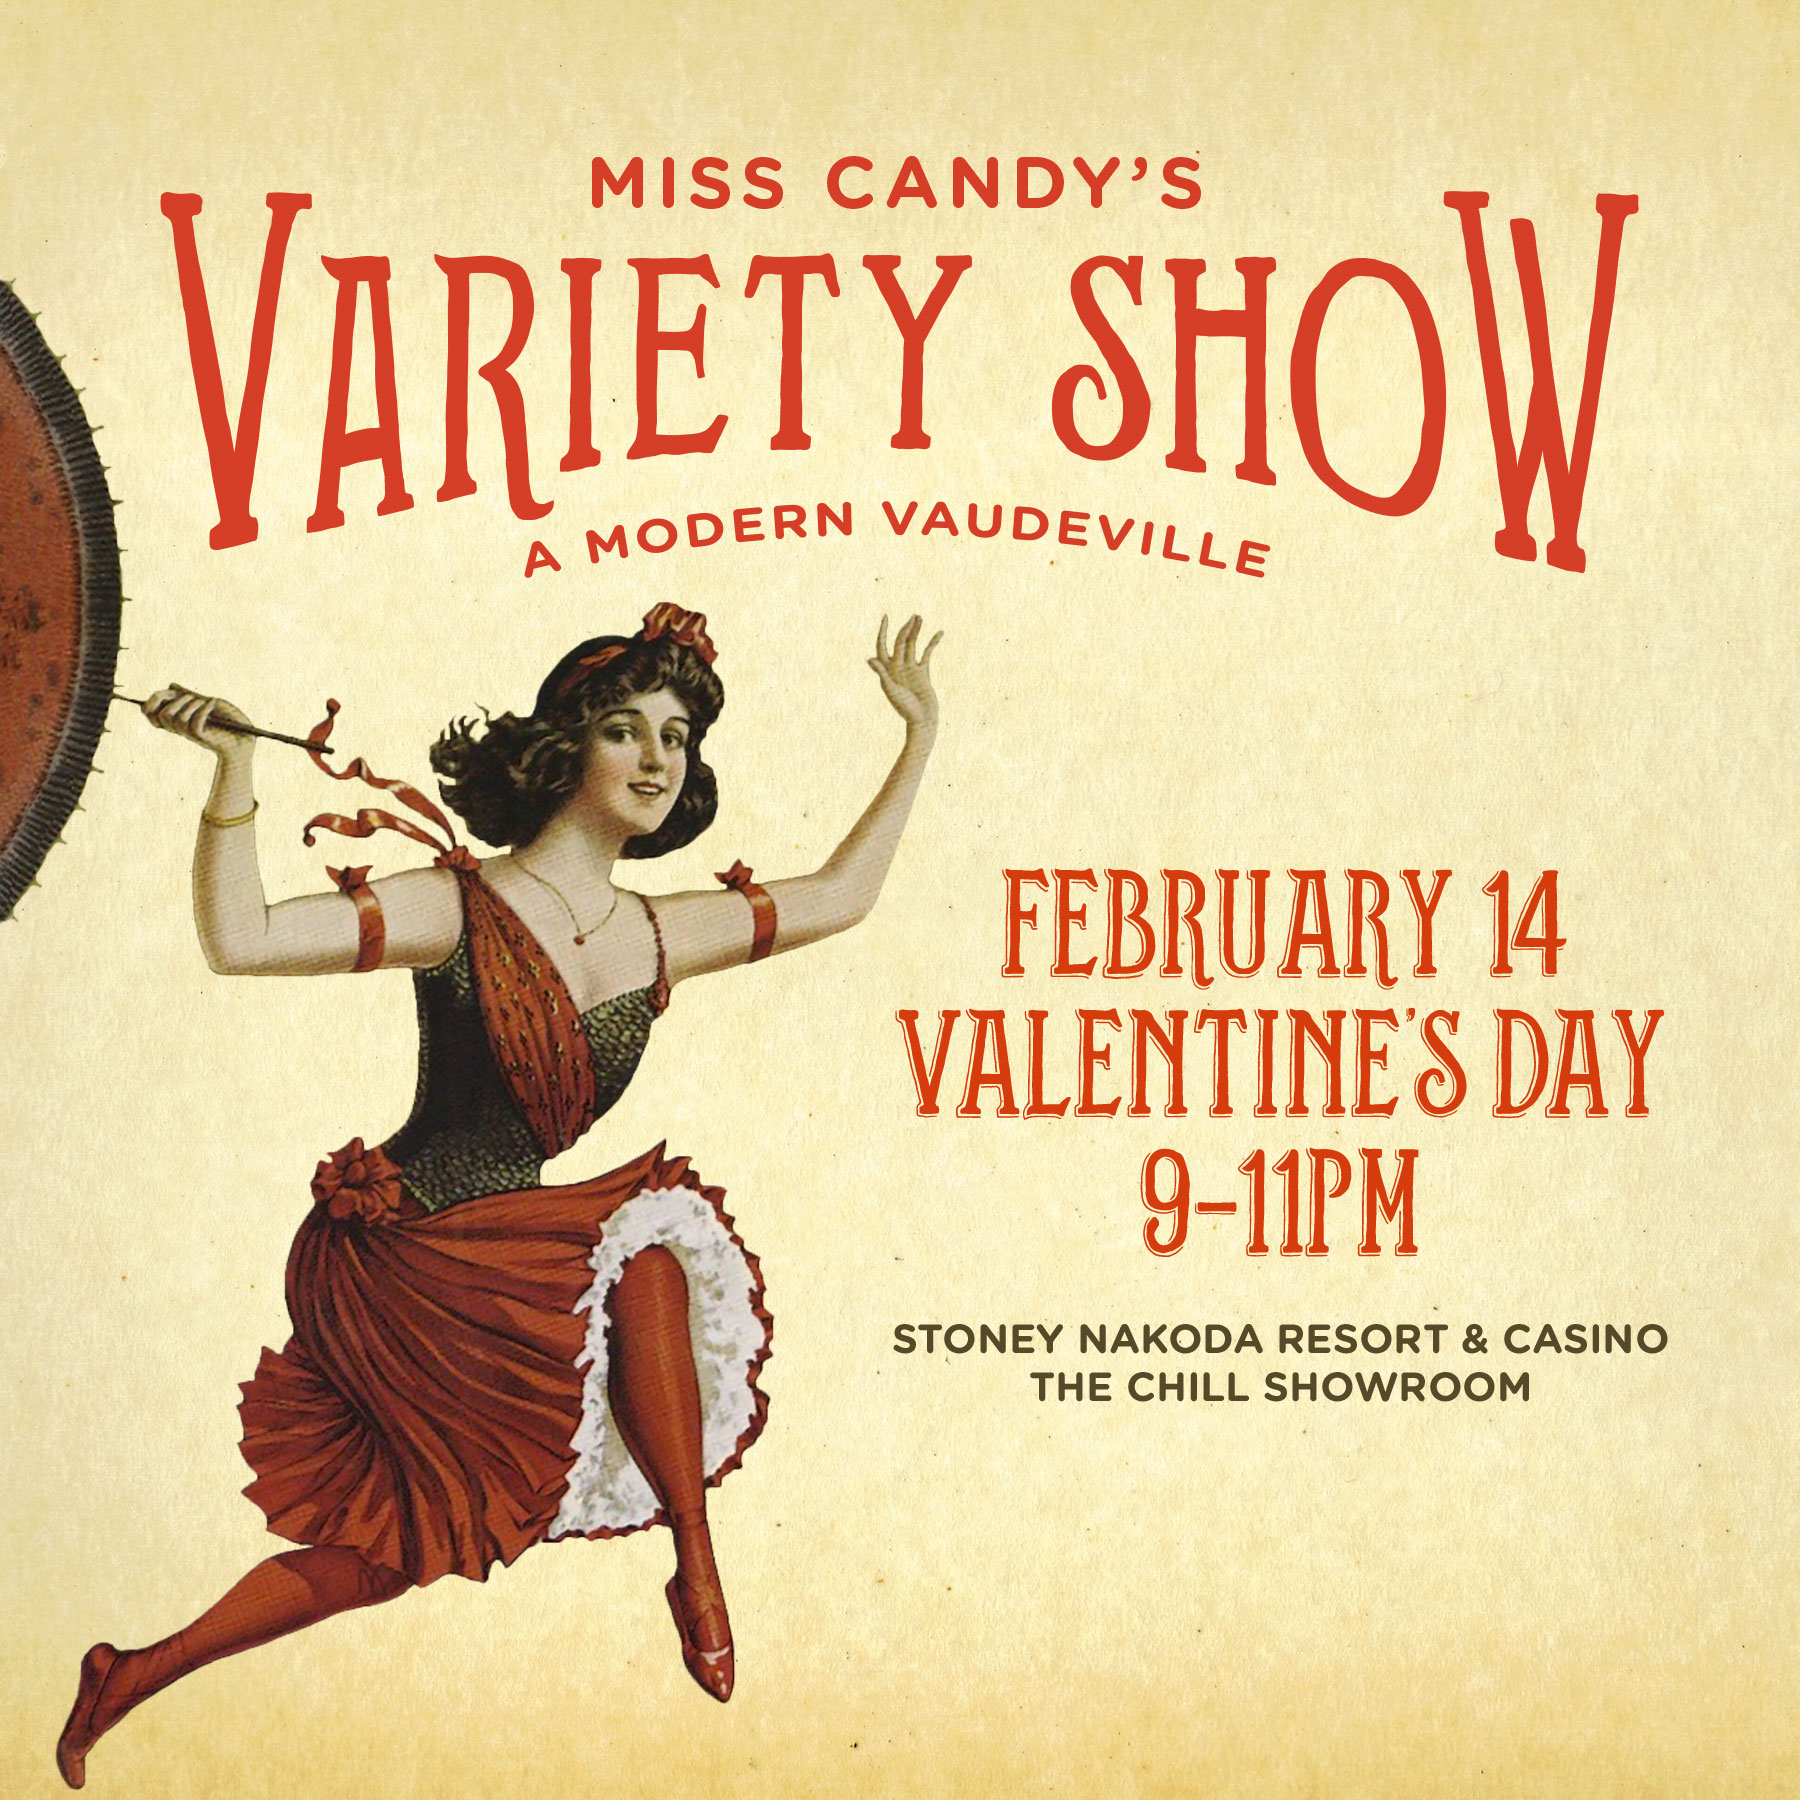 Miss Candy's Variety Show